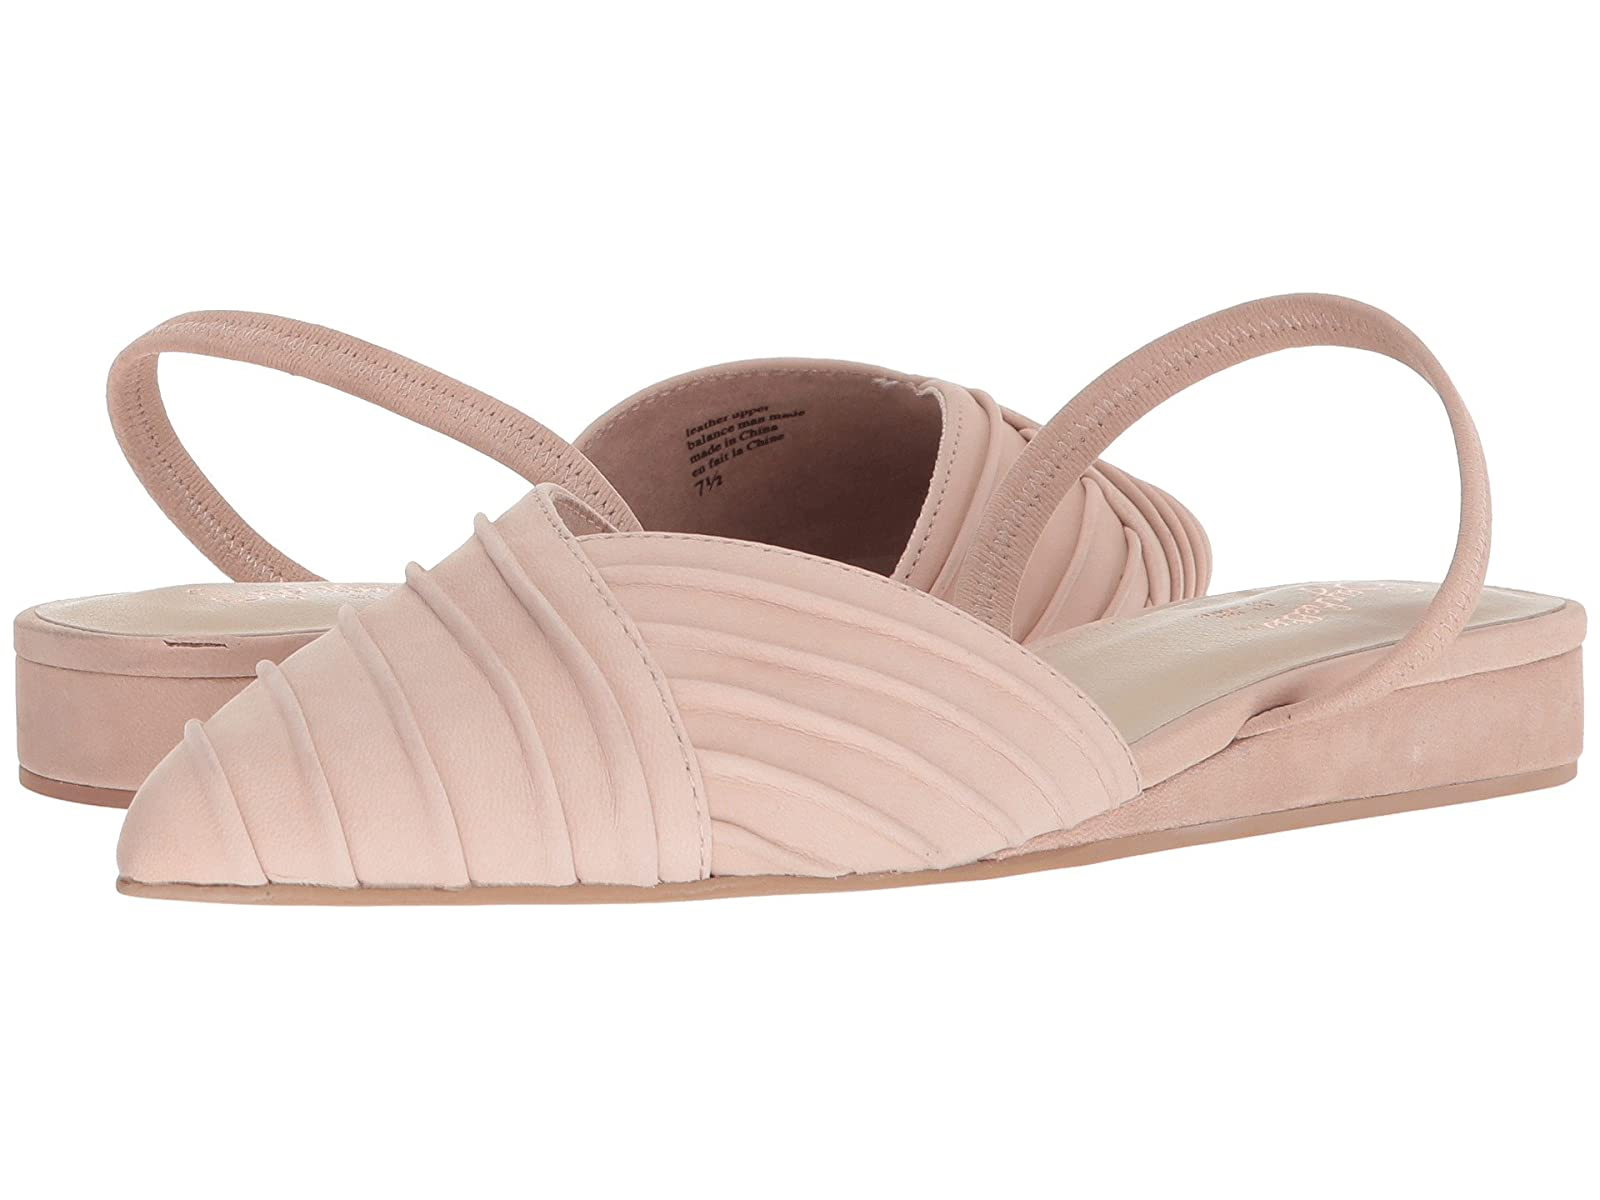 Seychelles Highly ToutedAtmospheric grades have affordable shoes